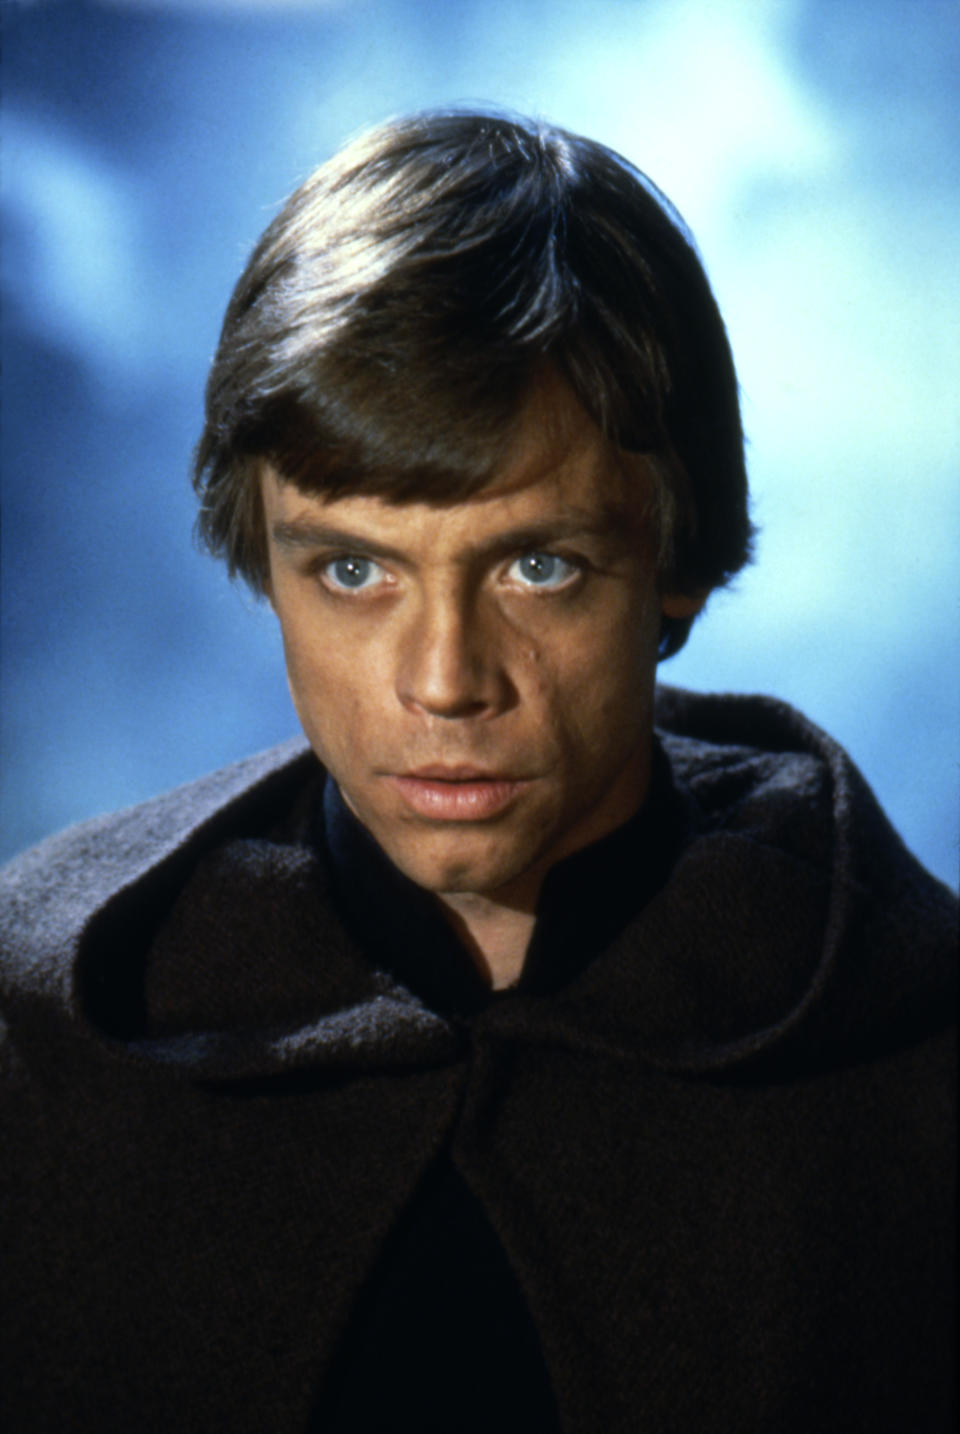 American actor Mark Hamill on the set of Star Wars: Episode VI - Return of the Jedi directed by Welsh Richard Marquand. (Photo by Sunset Boulevard/Corbis via Getty Images)